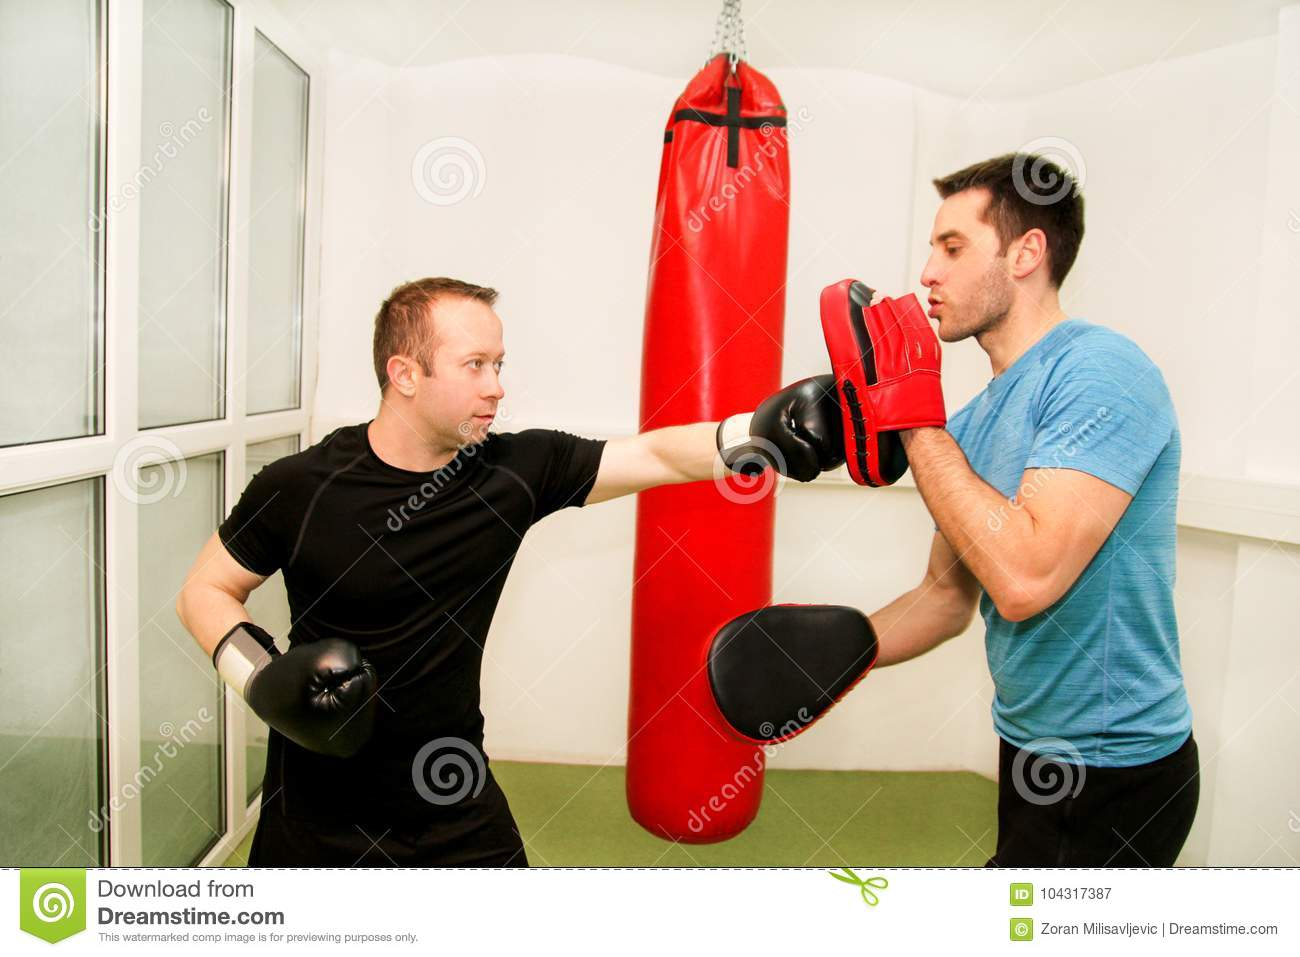 The Male Boxer Training At Gym Stock Image - Image of boxer